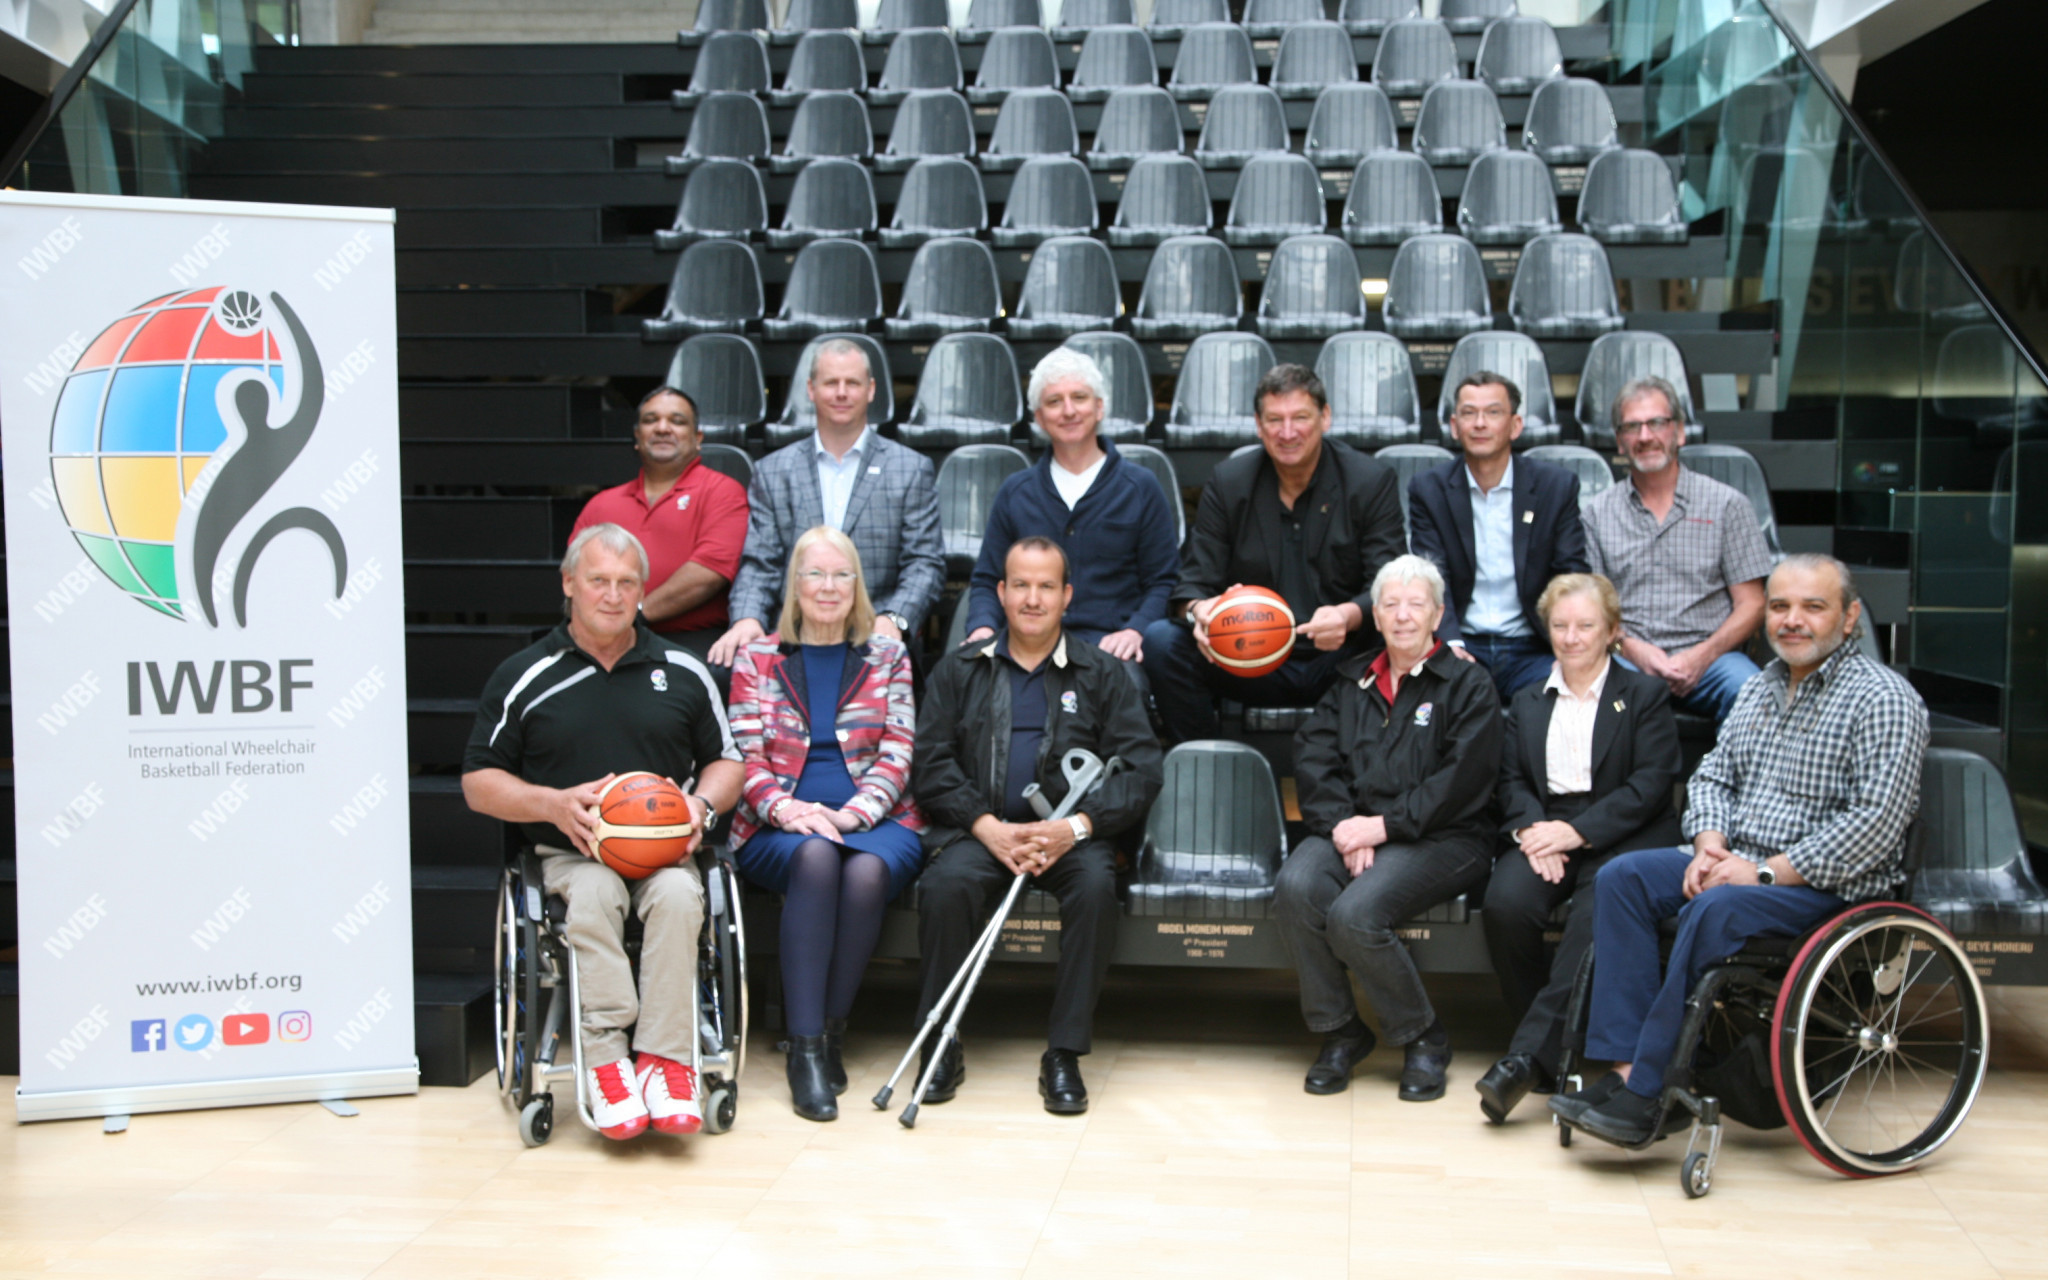 Molten was named as the global partner and official ball partner of the IWBF in April 2018 ©IWBF